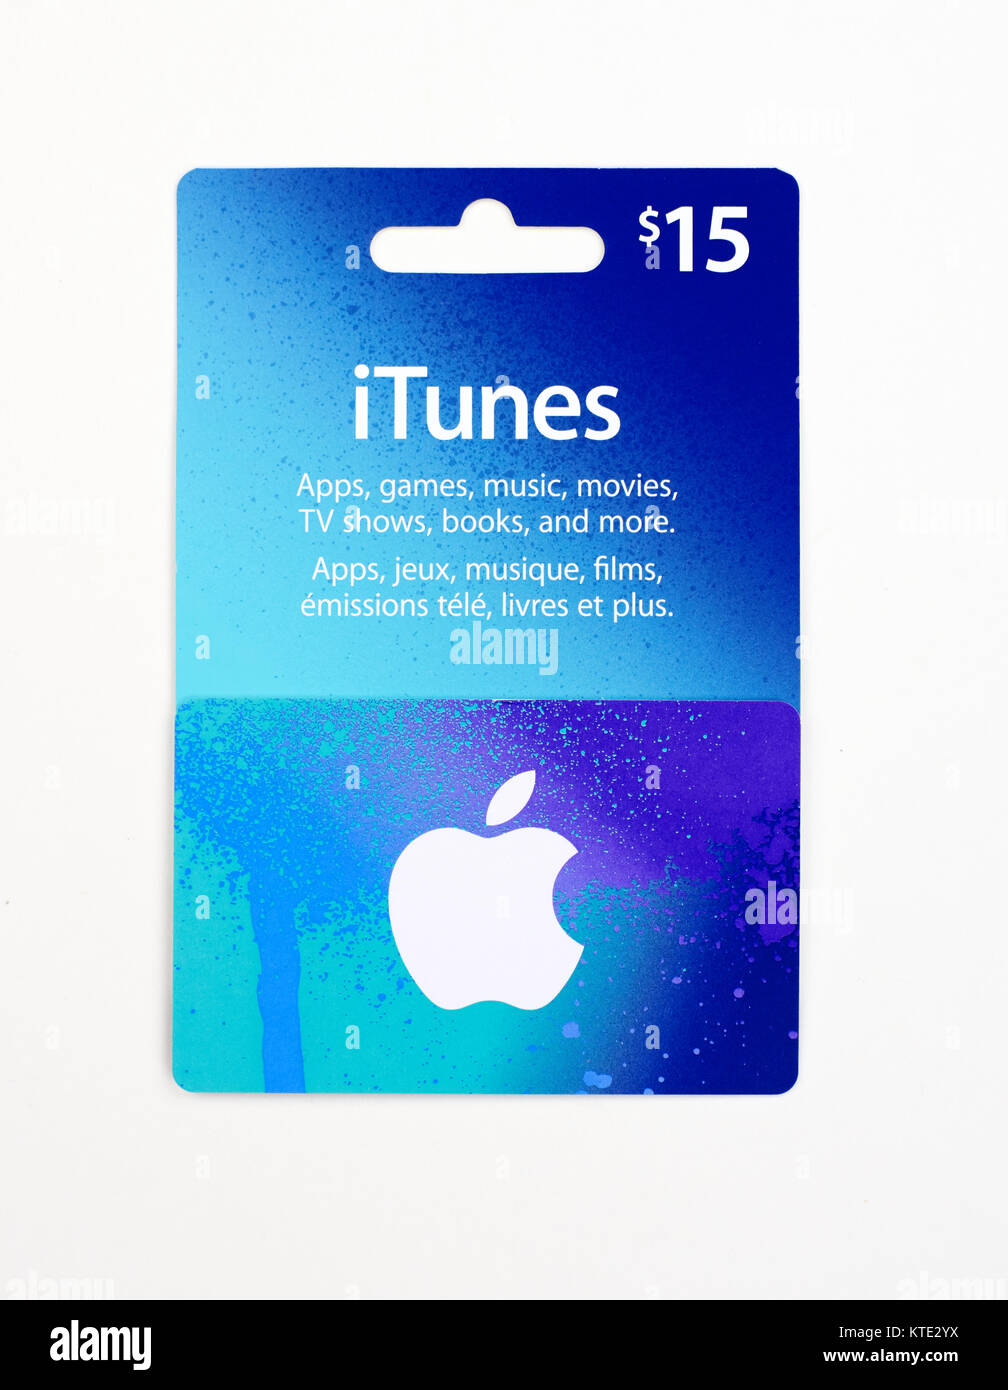 Itunes Gift Card Stock Photos & Itunes Gift Card Stock